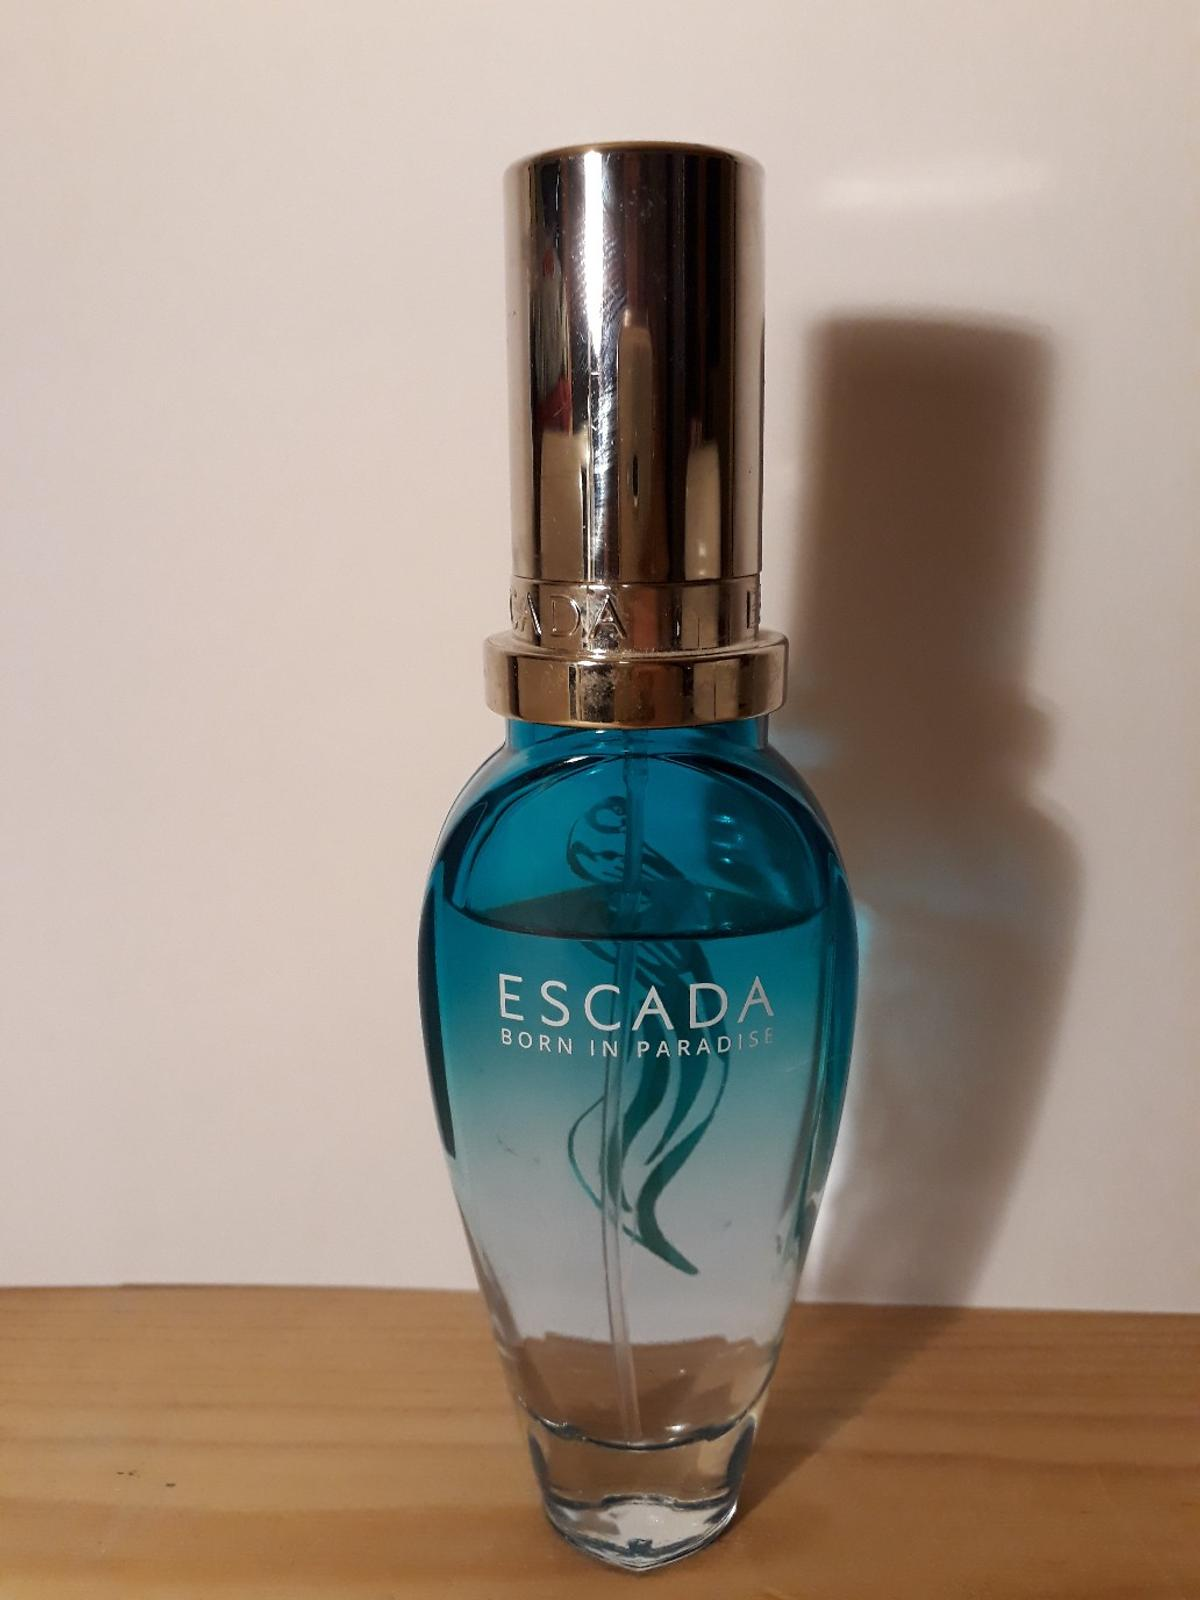 Escada Parfüm In 50670 Köln For 300 For Sale Shpock